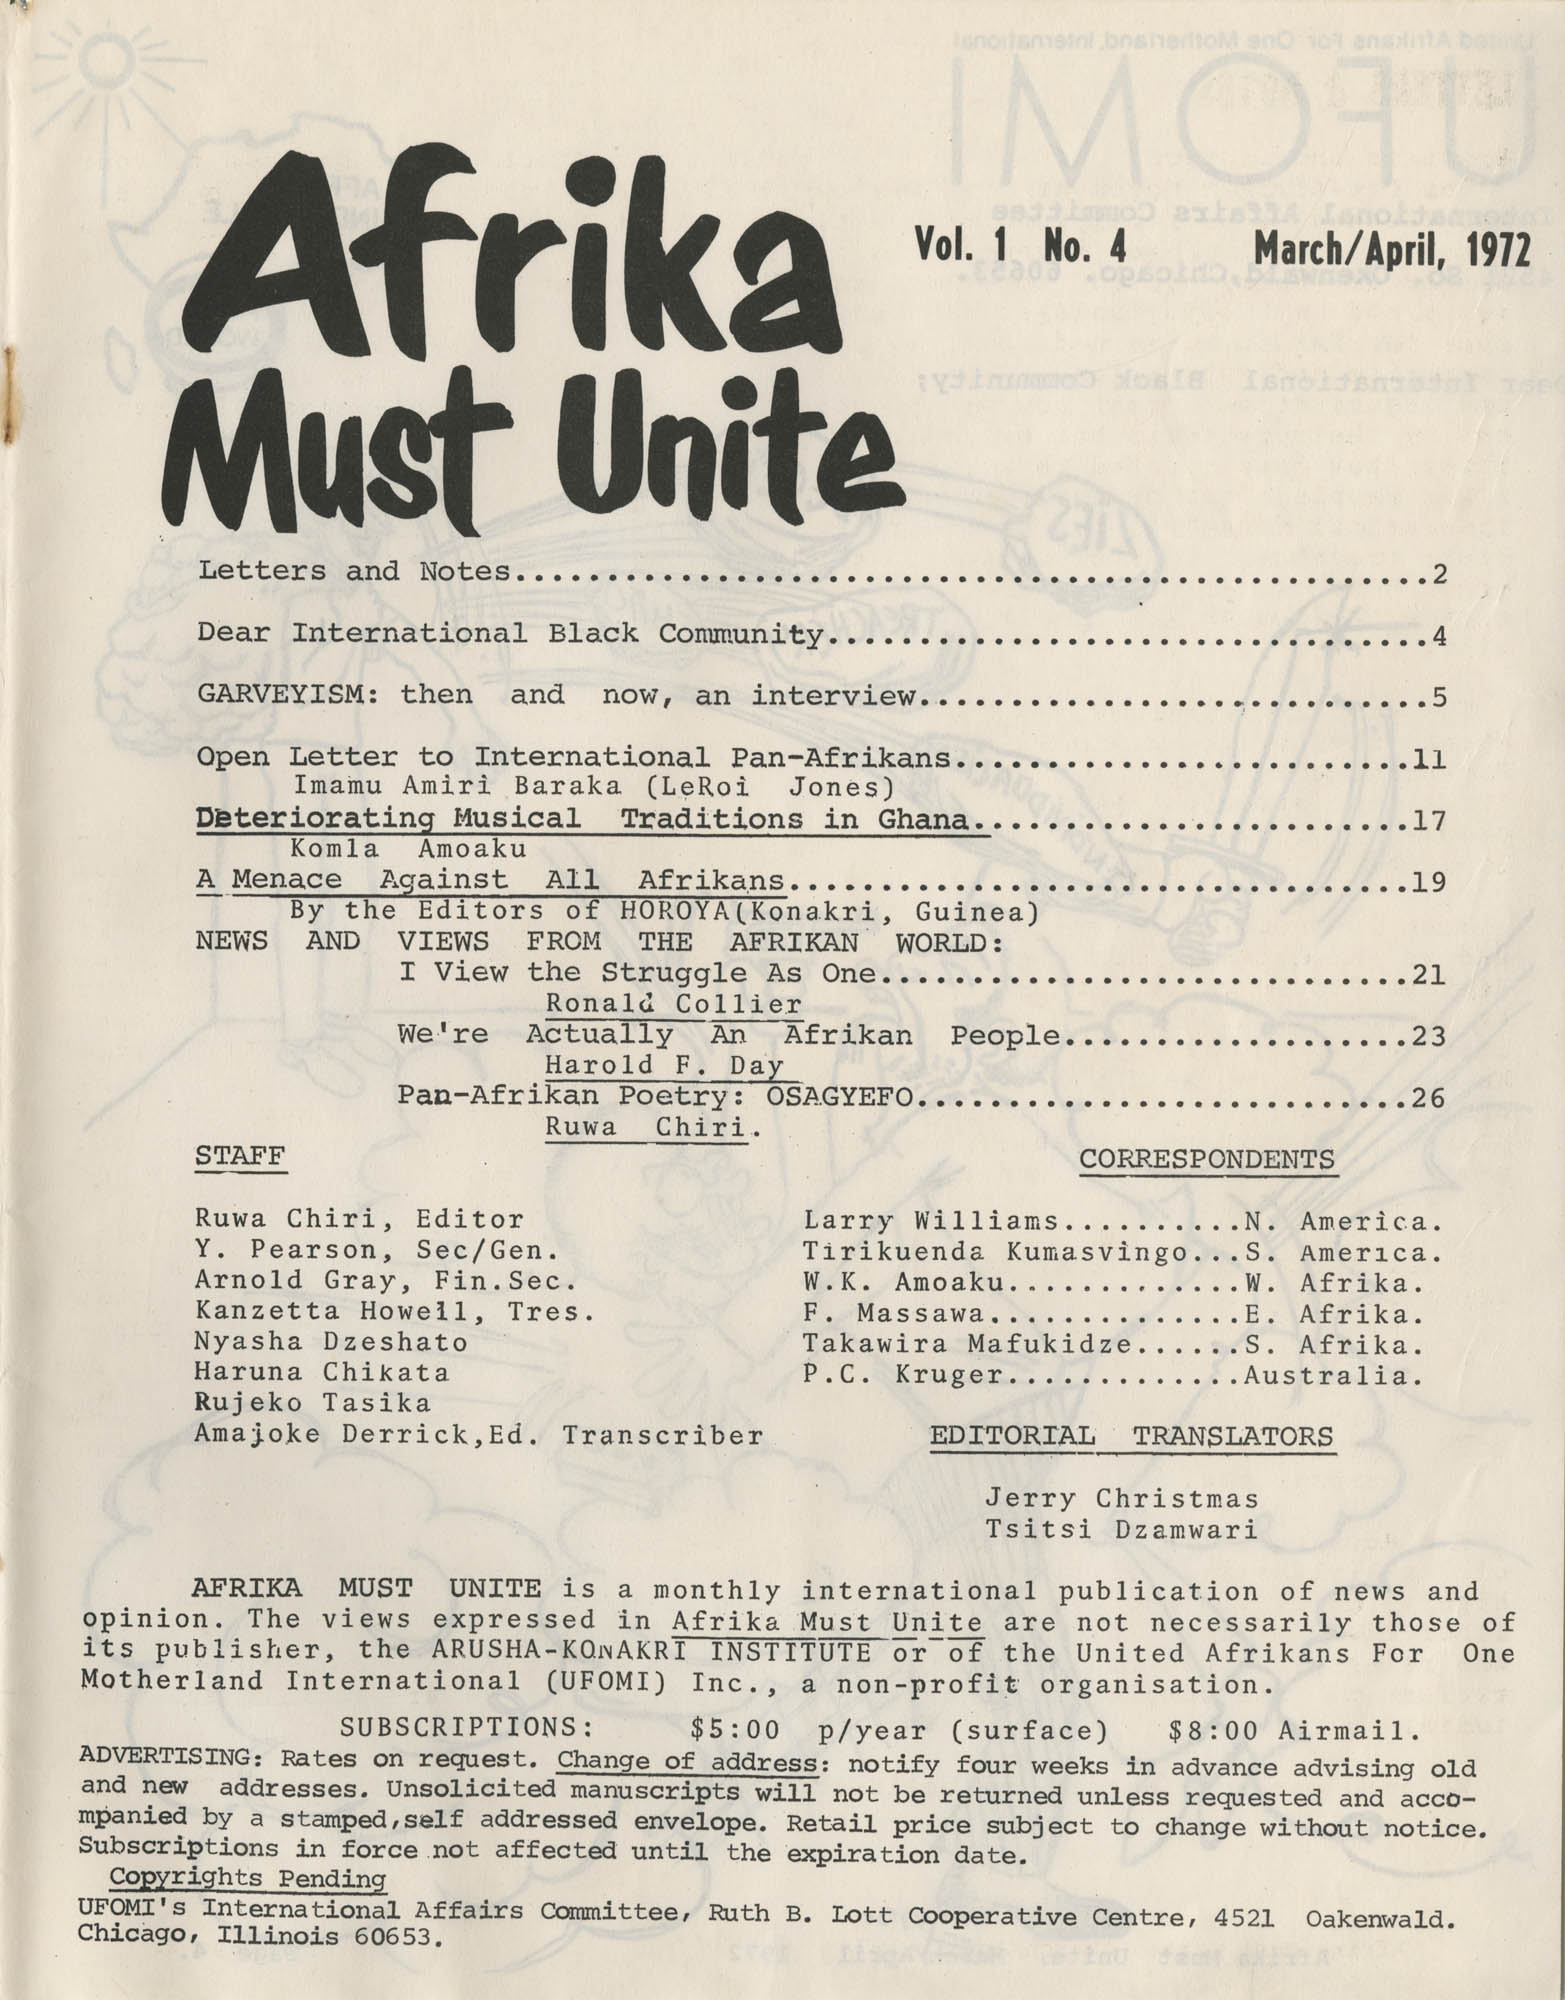 Afrika Must Unite, Vol. 1, No. 4, Page 3